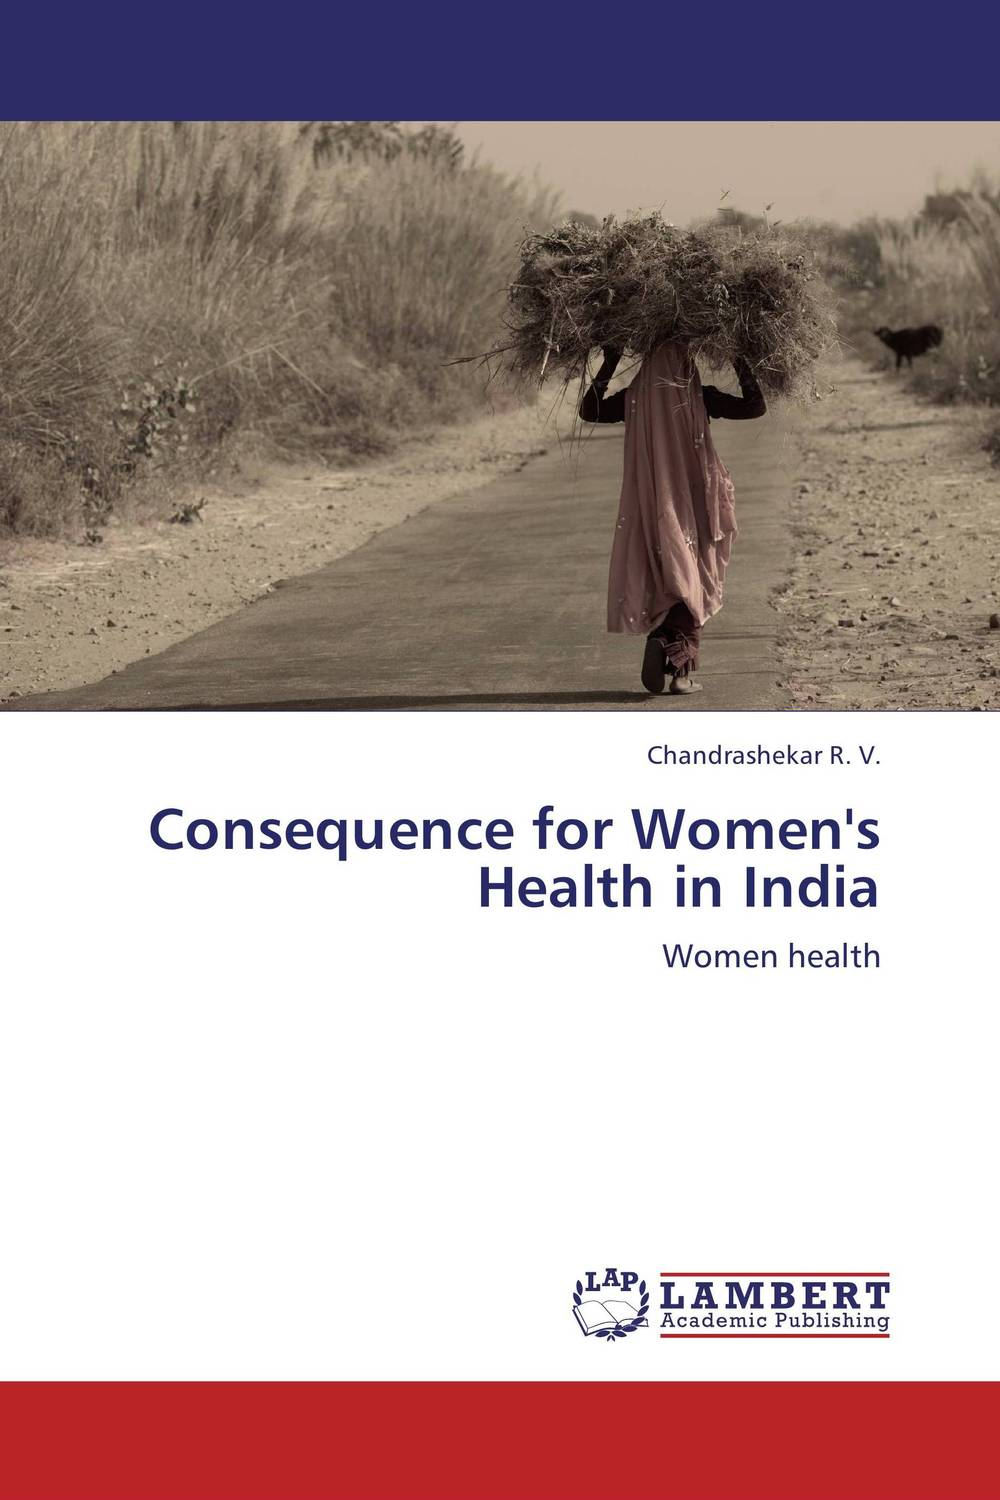 Consequence for Women's Health in India prostate health devices is prostate removal prostatitis mainly for the prostate health and prostatitis health capsule